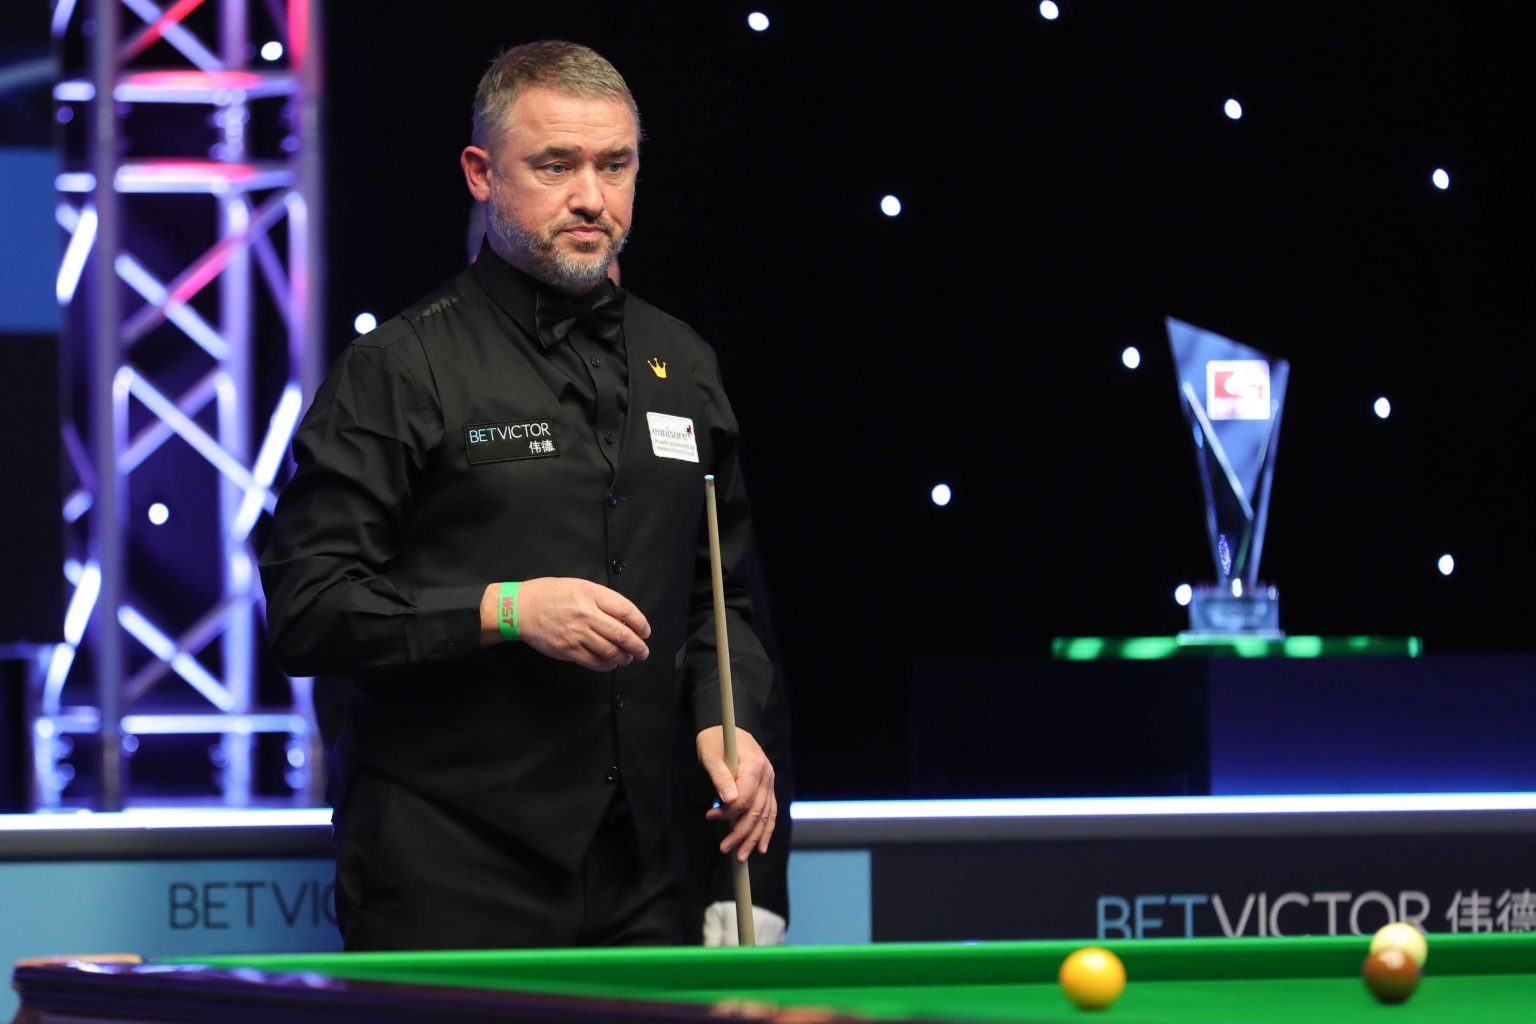 Stephen Hendry assesses World Snooker Championship chances after first match in nine years